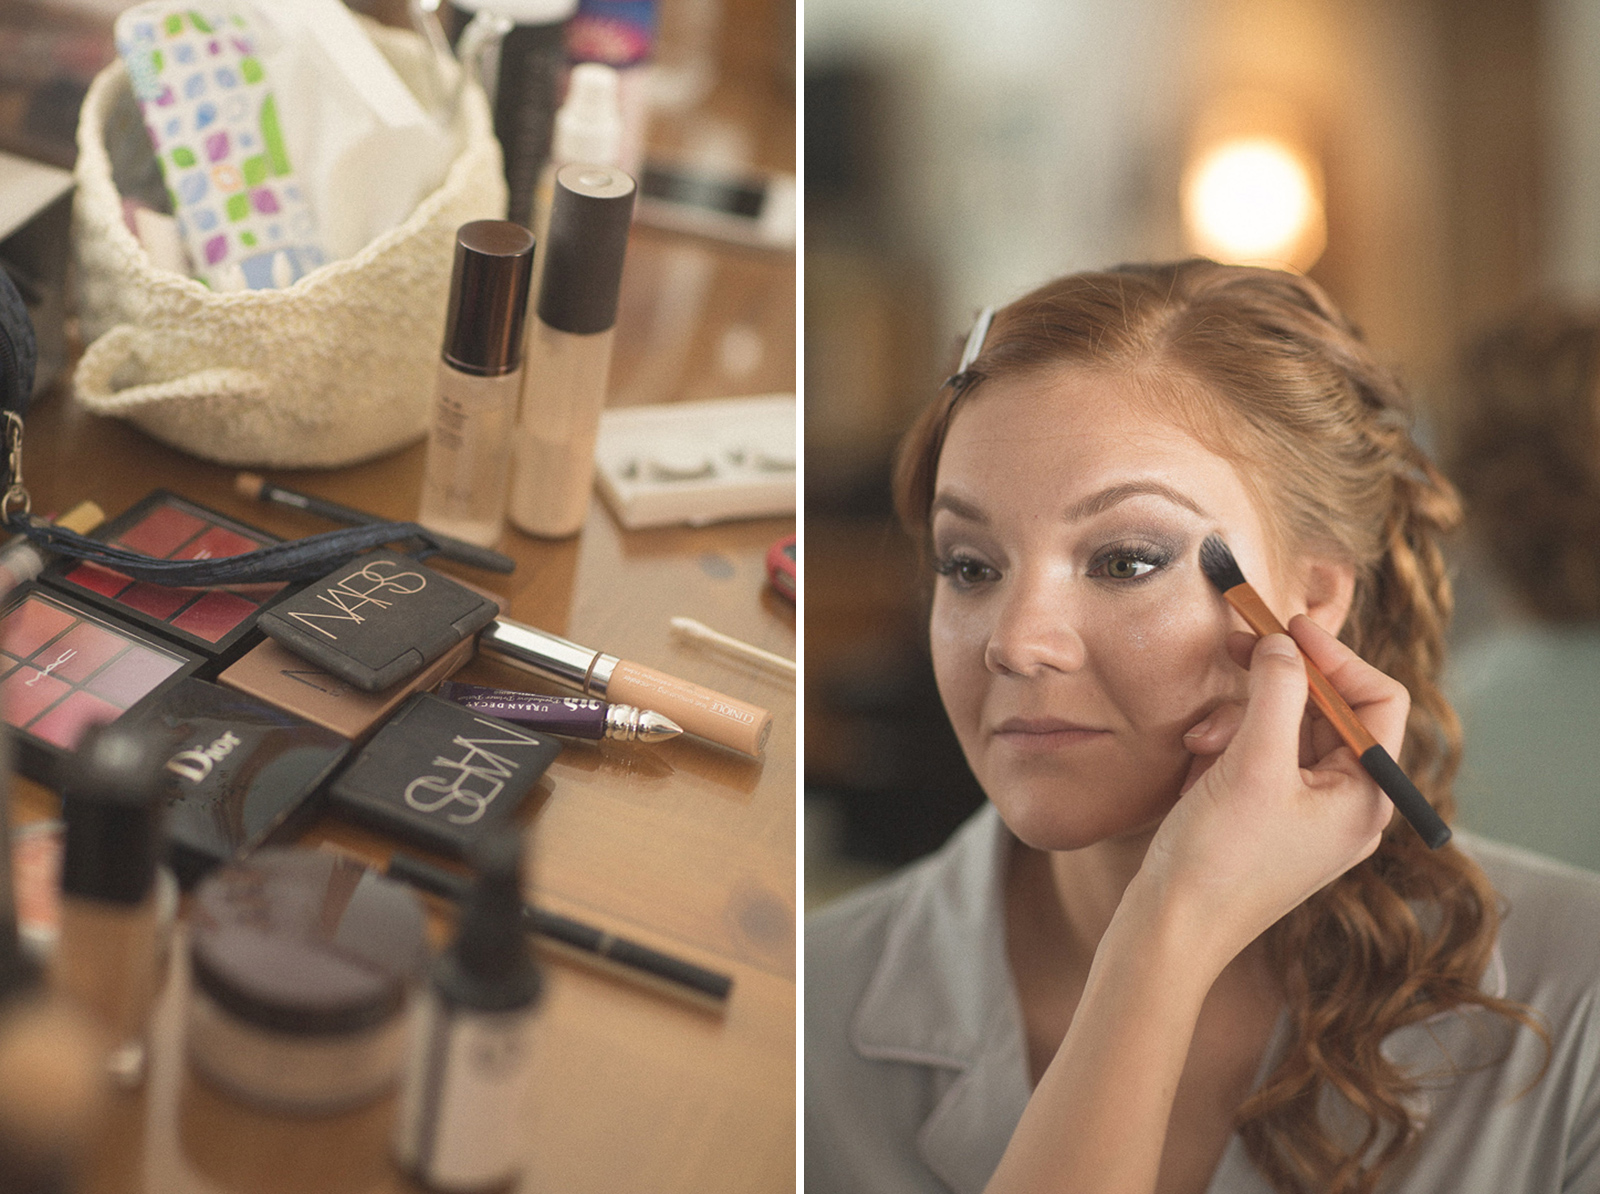 005-girl-getting-ready-for-colorado-wedding